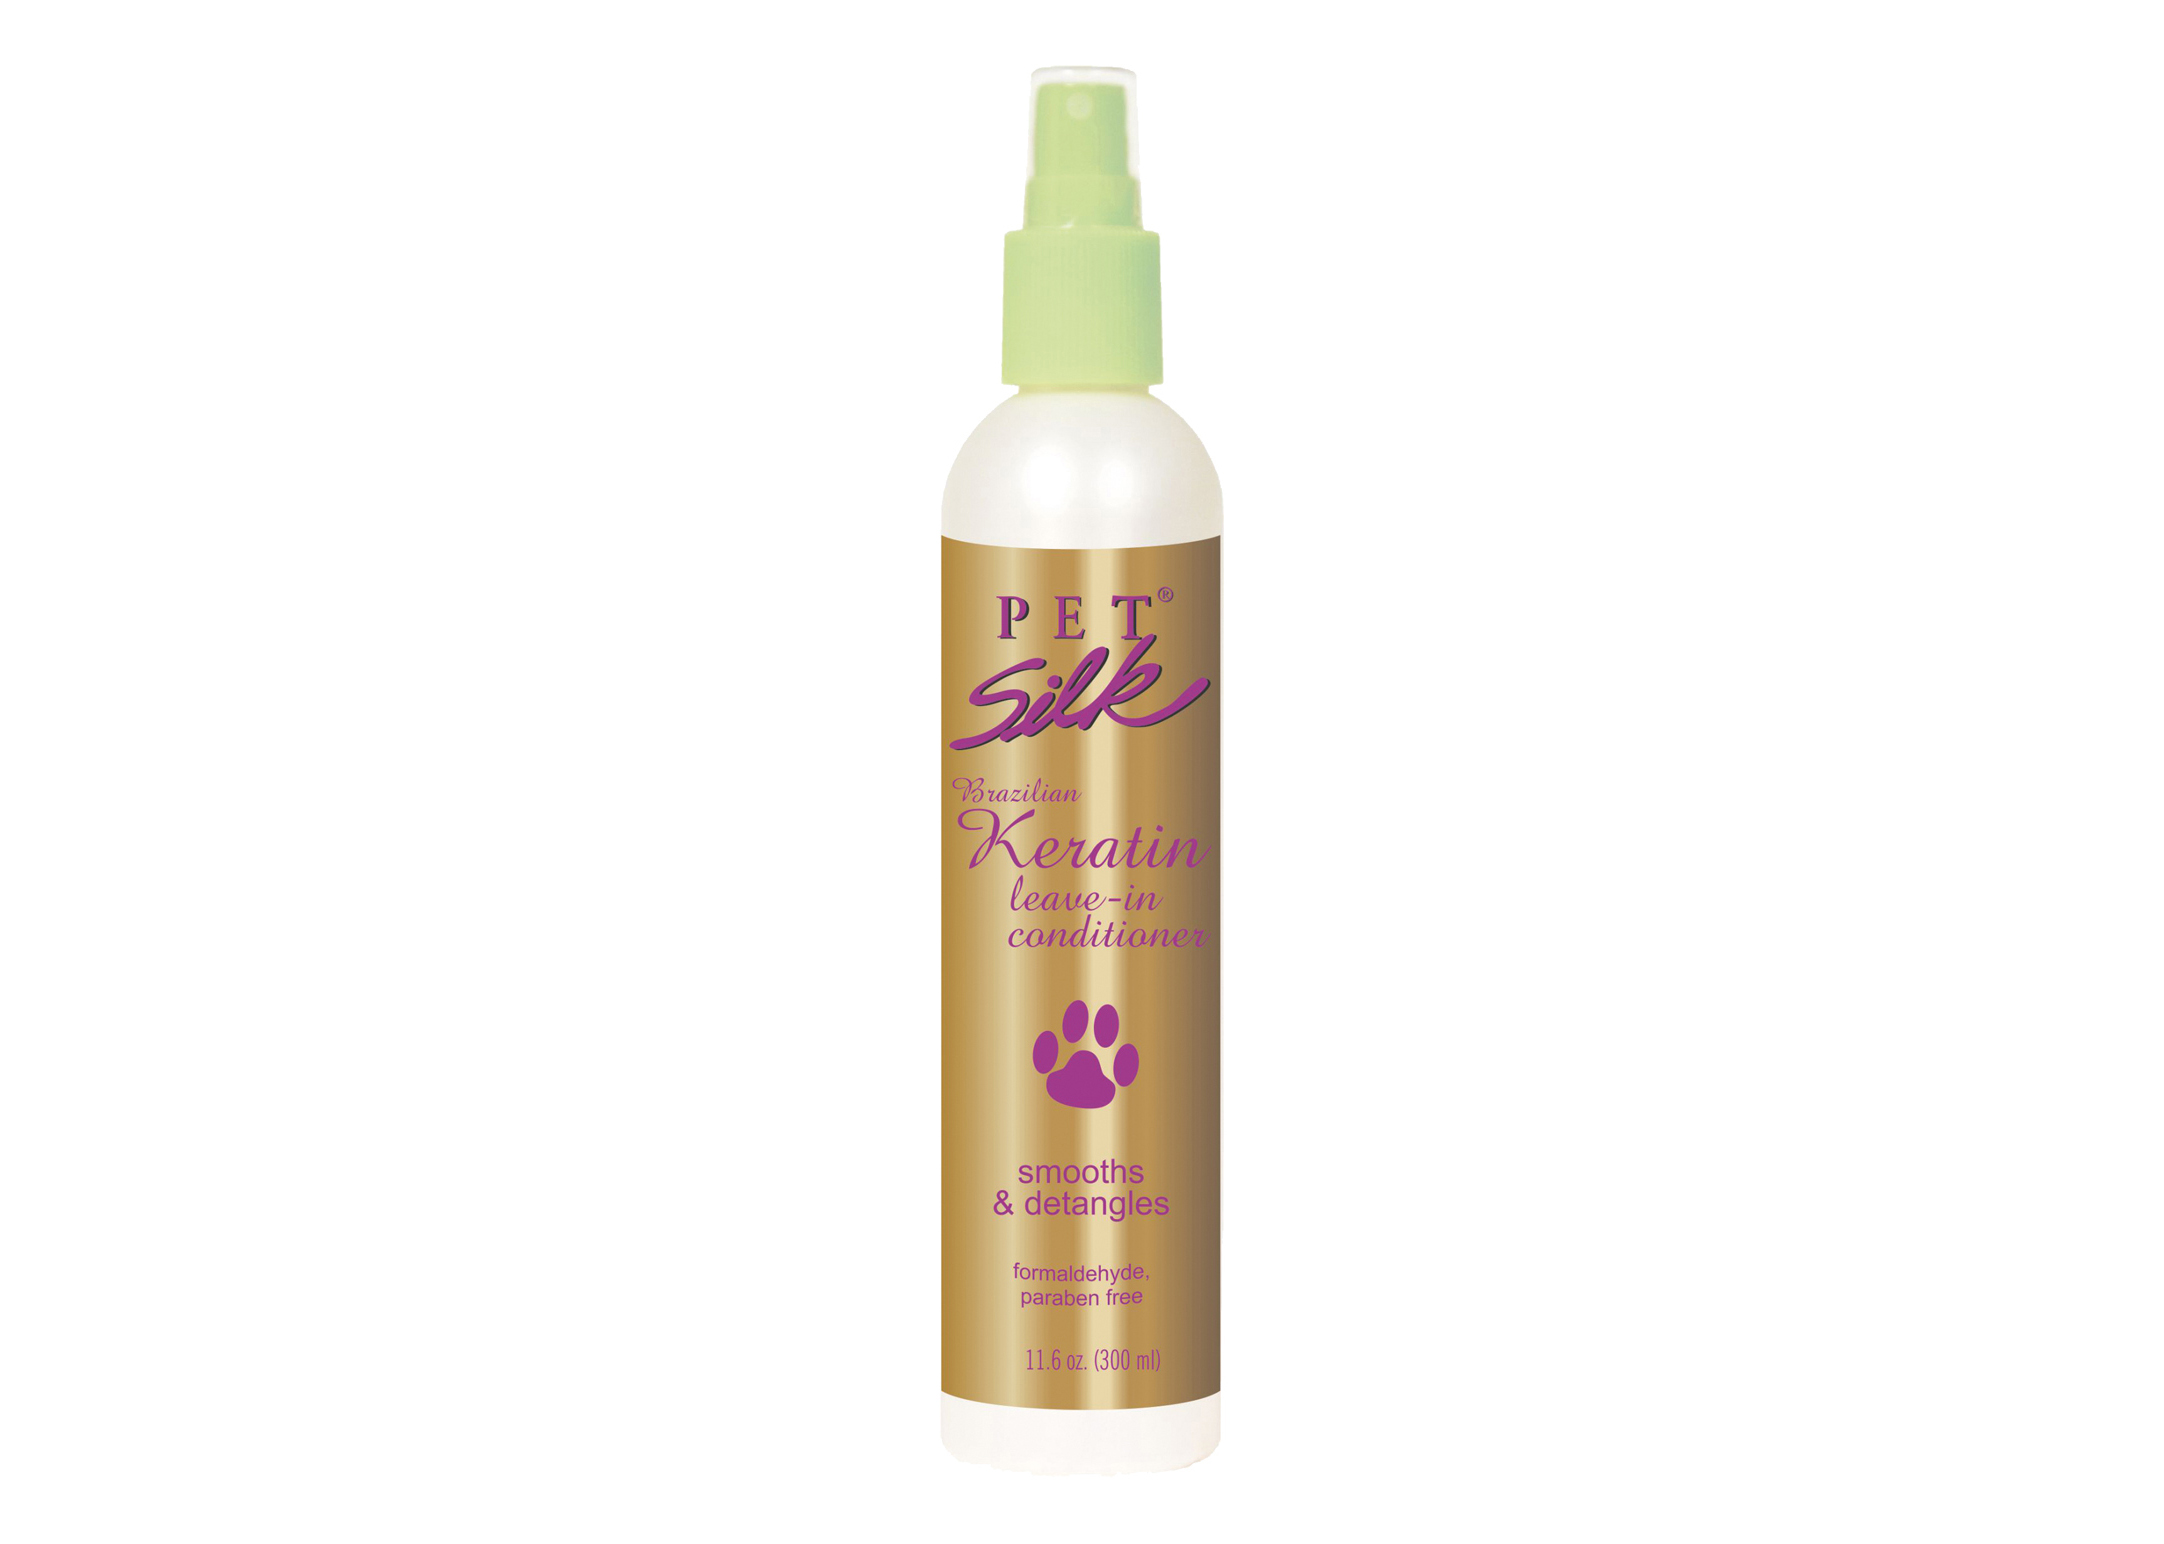 Pet Silk Brazilian Keratin 300 ml Leave-in Conditioner